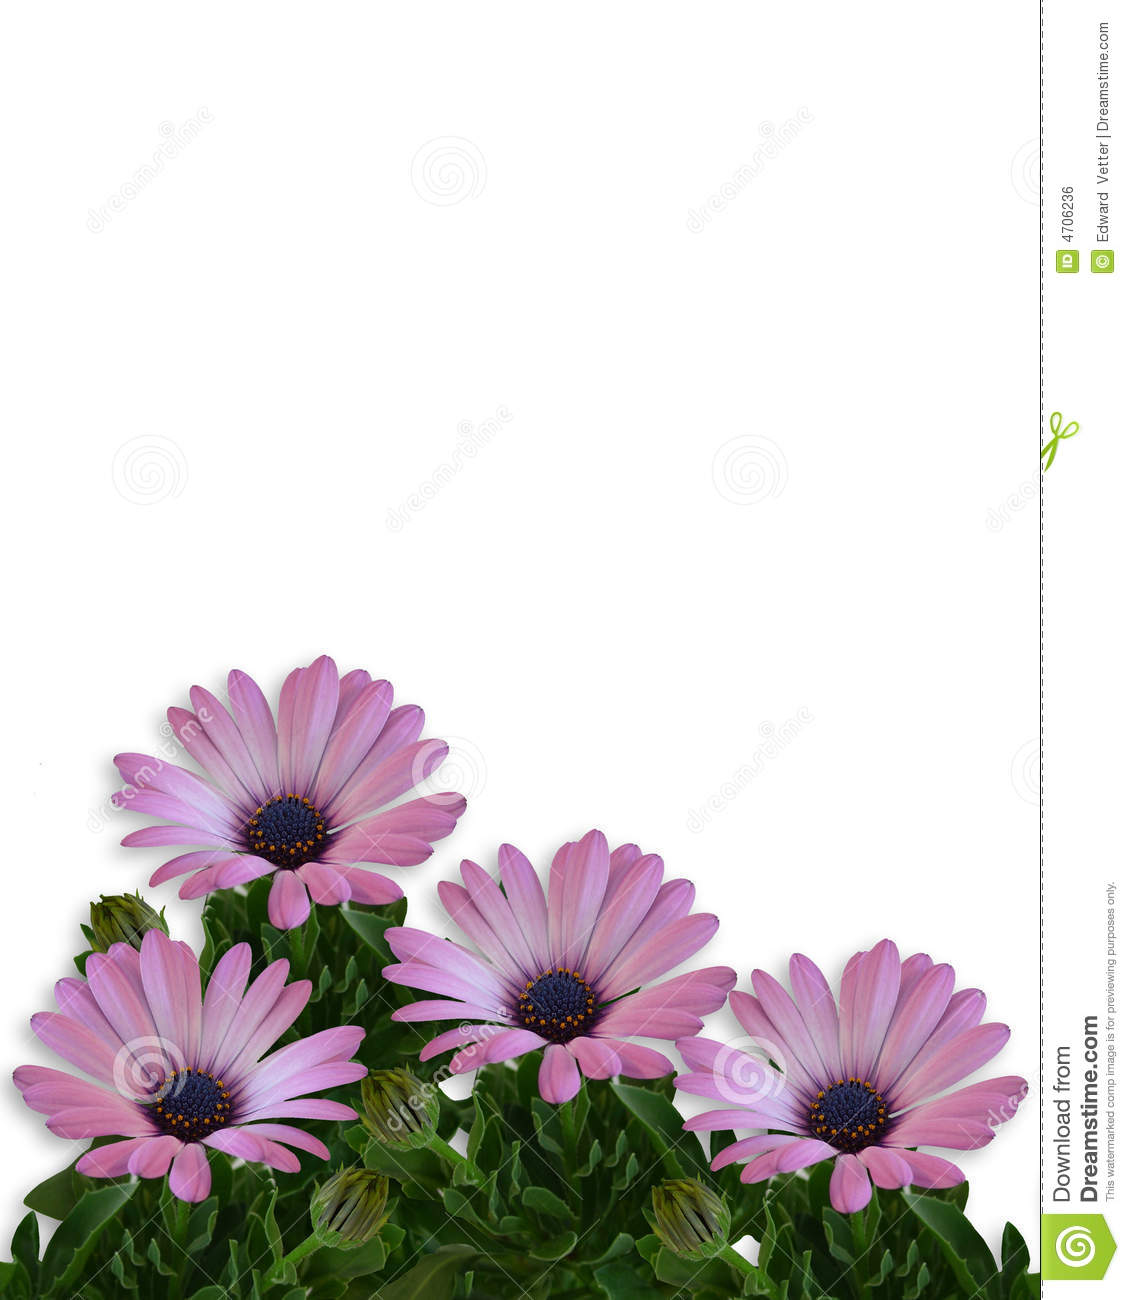 Daisy Floral Page Border Royalty Free Stock Image Image 4706236